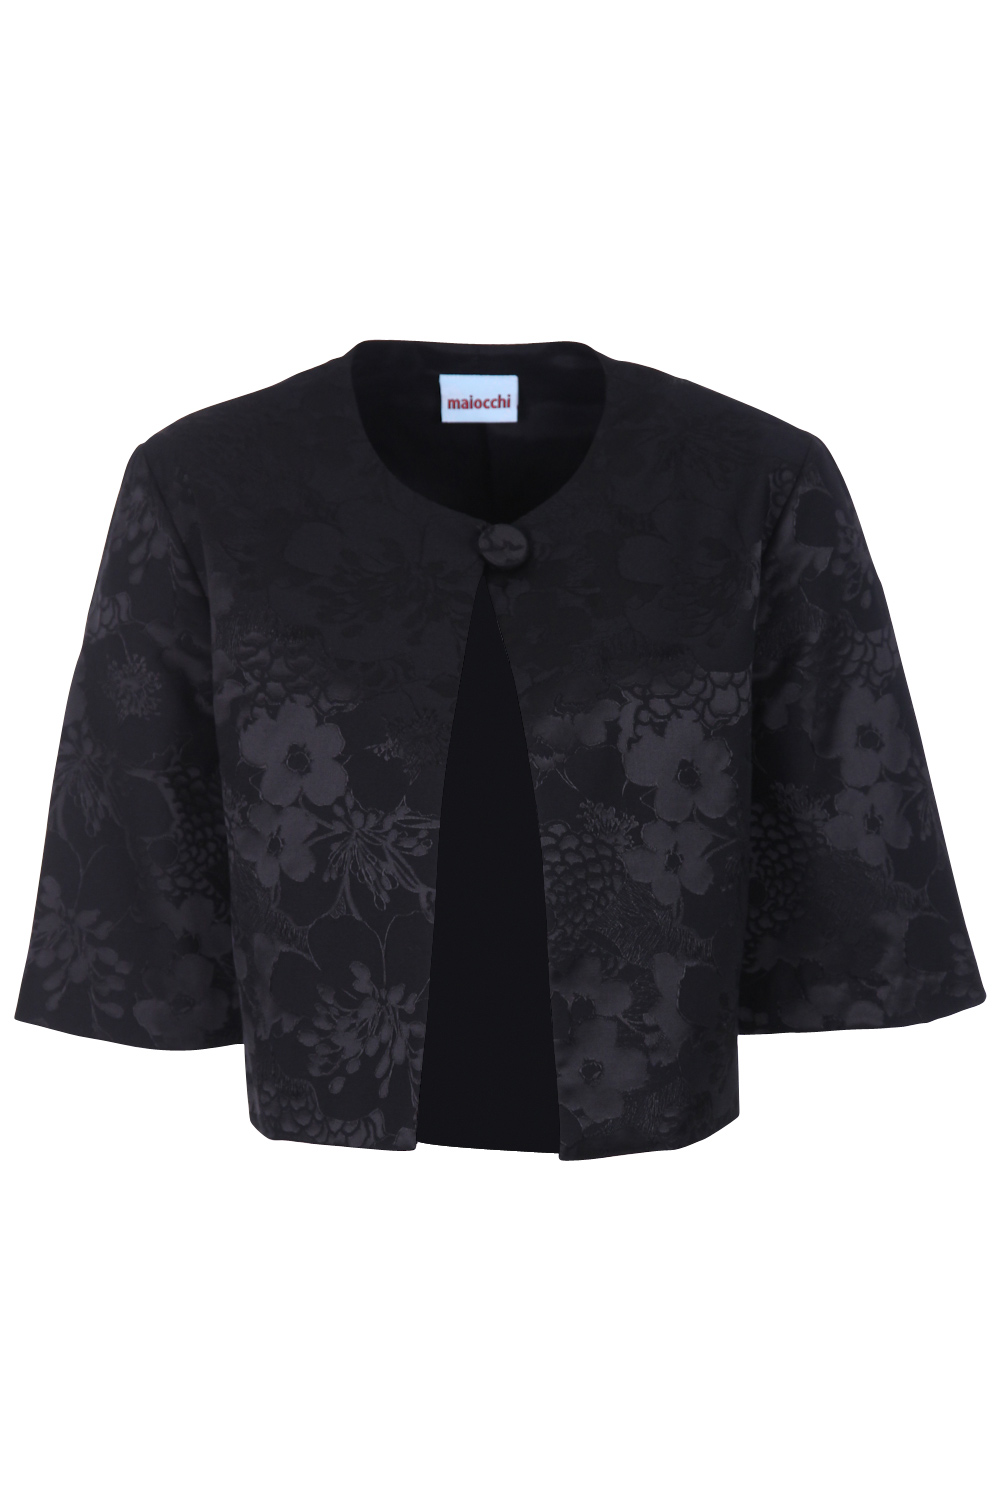 Maiocchi Kiss And Tell Jacket